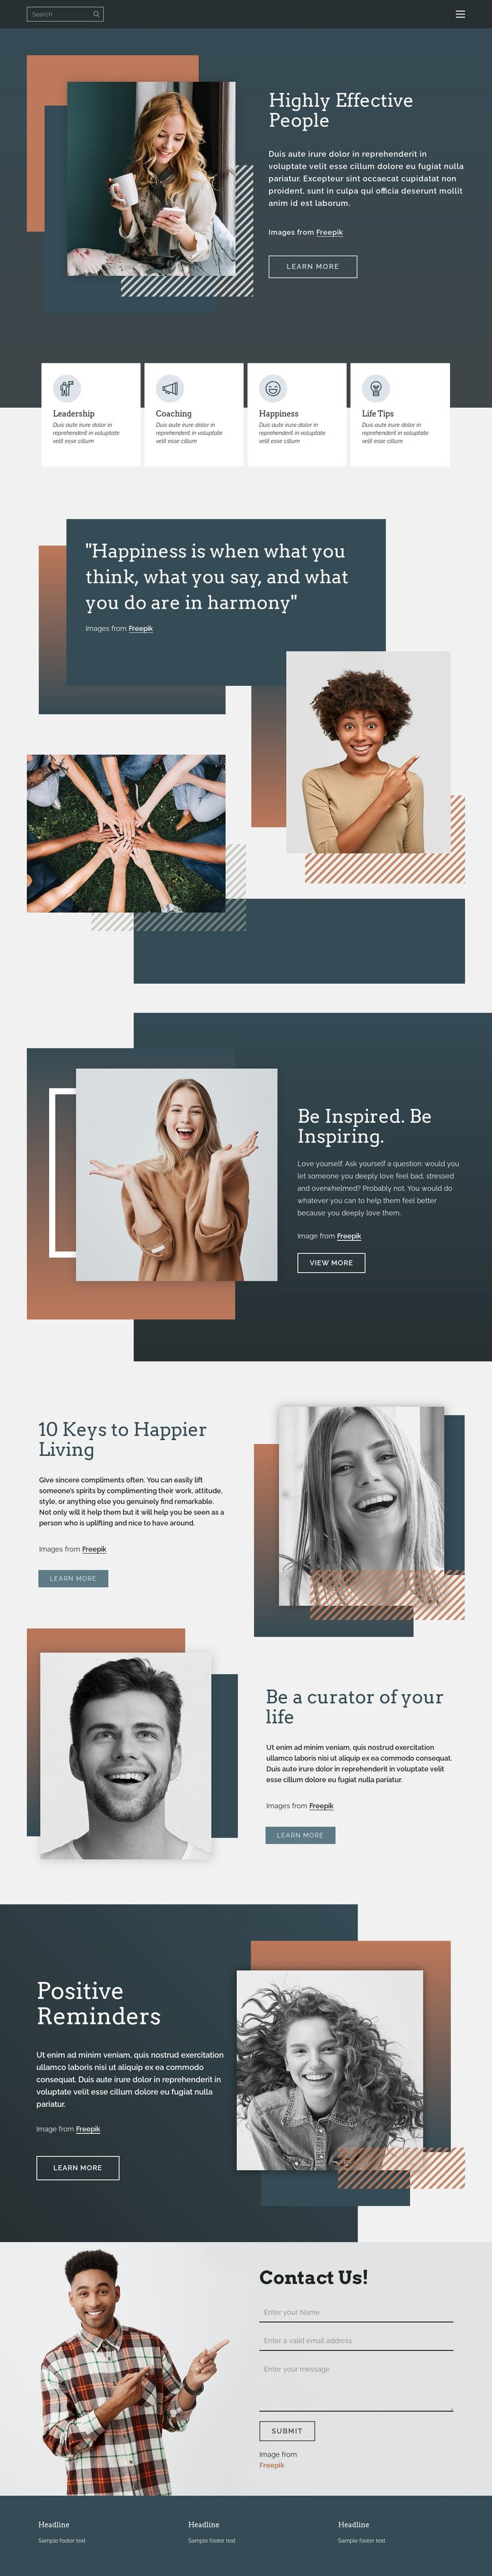 How to be successful in life Html Code Example